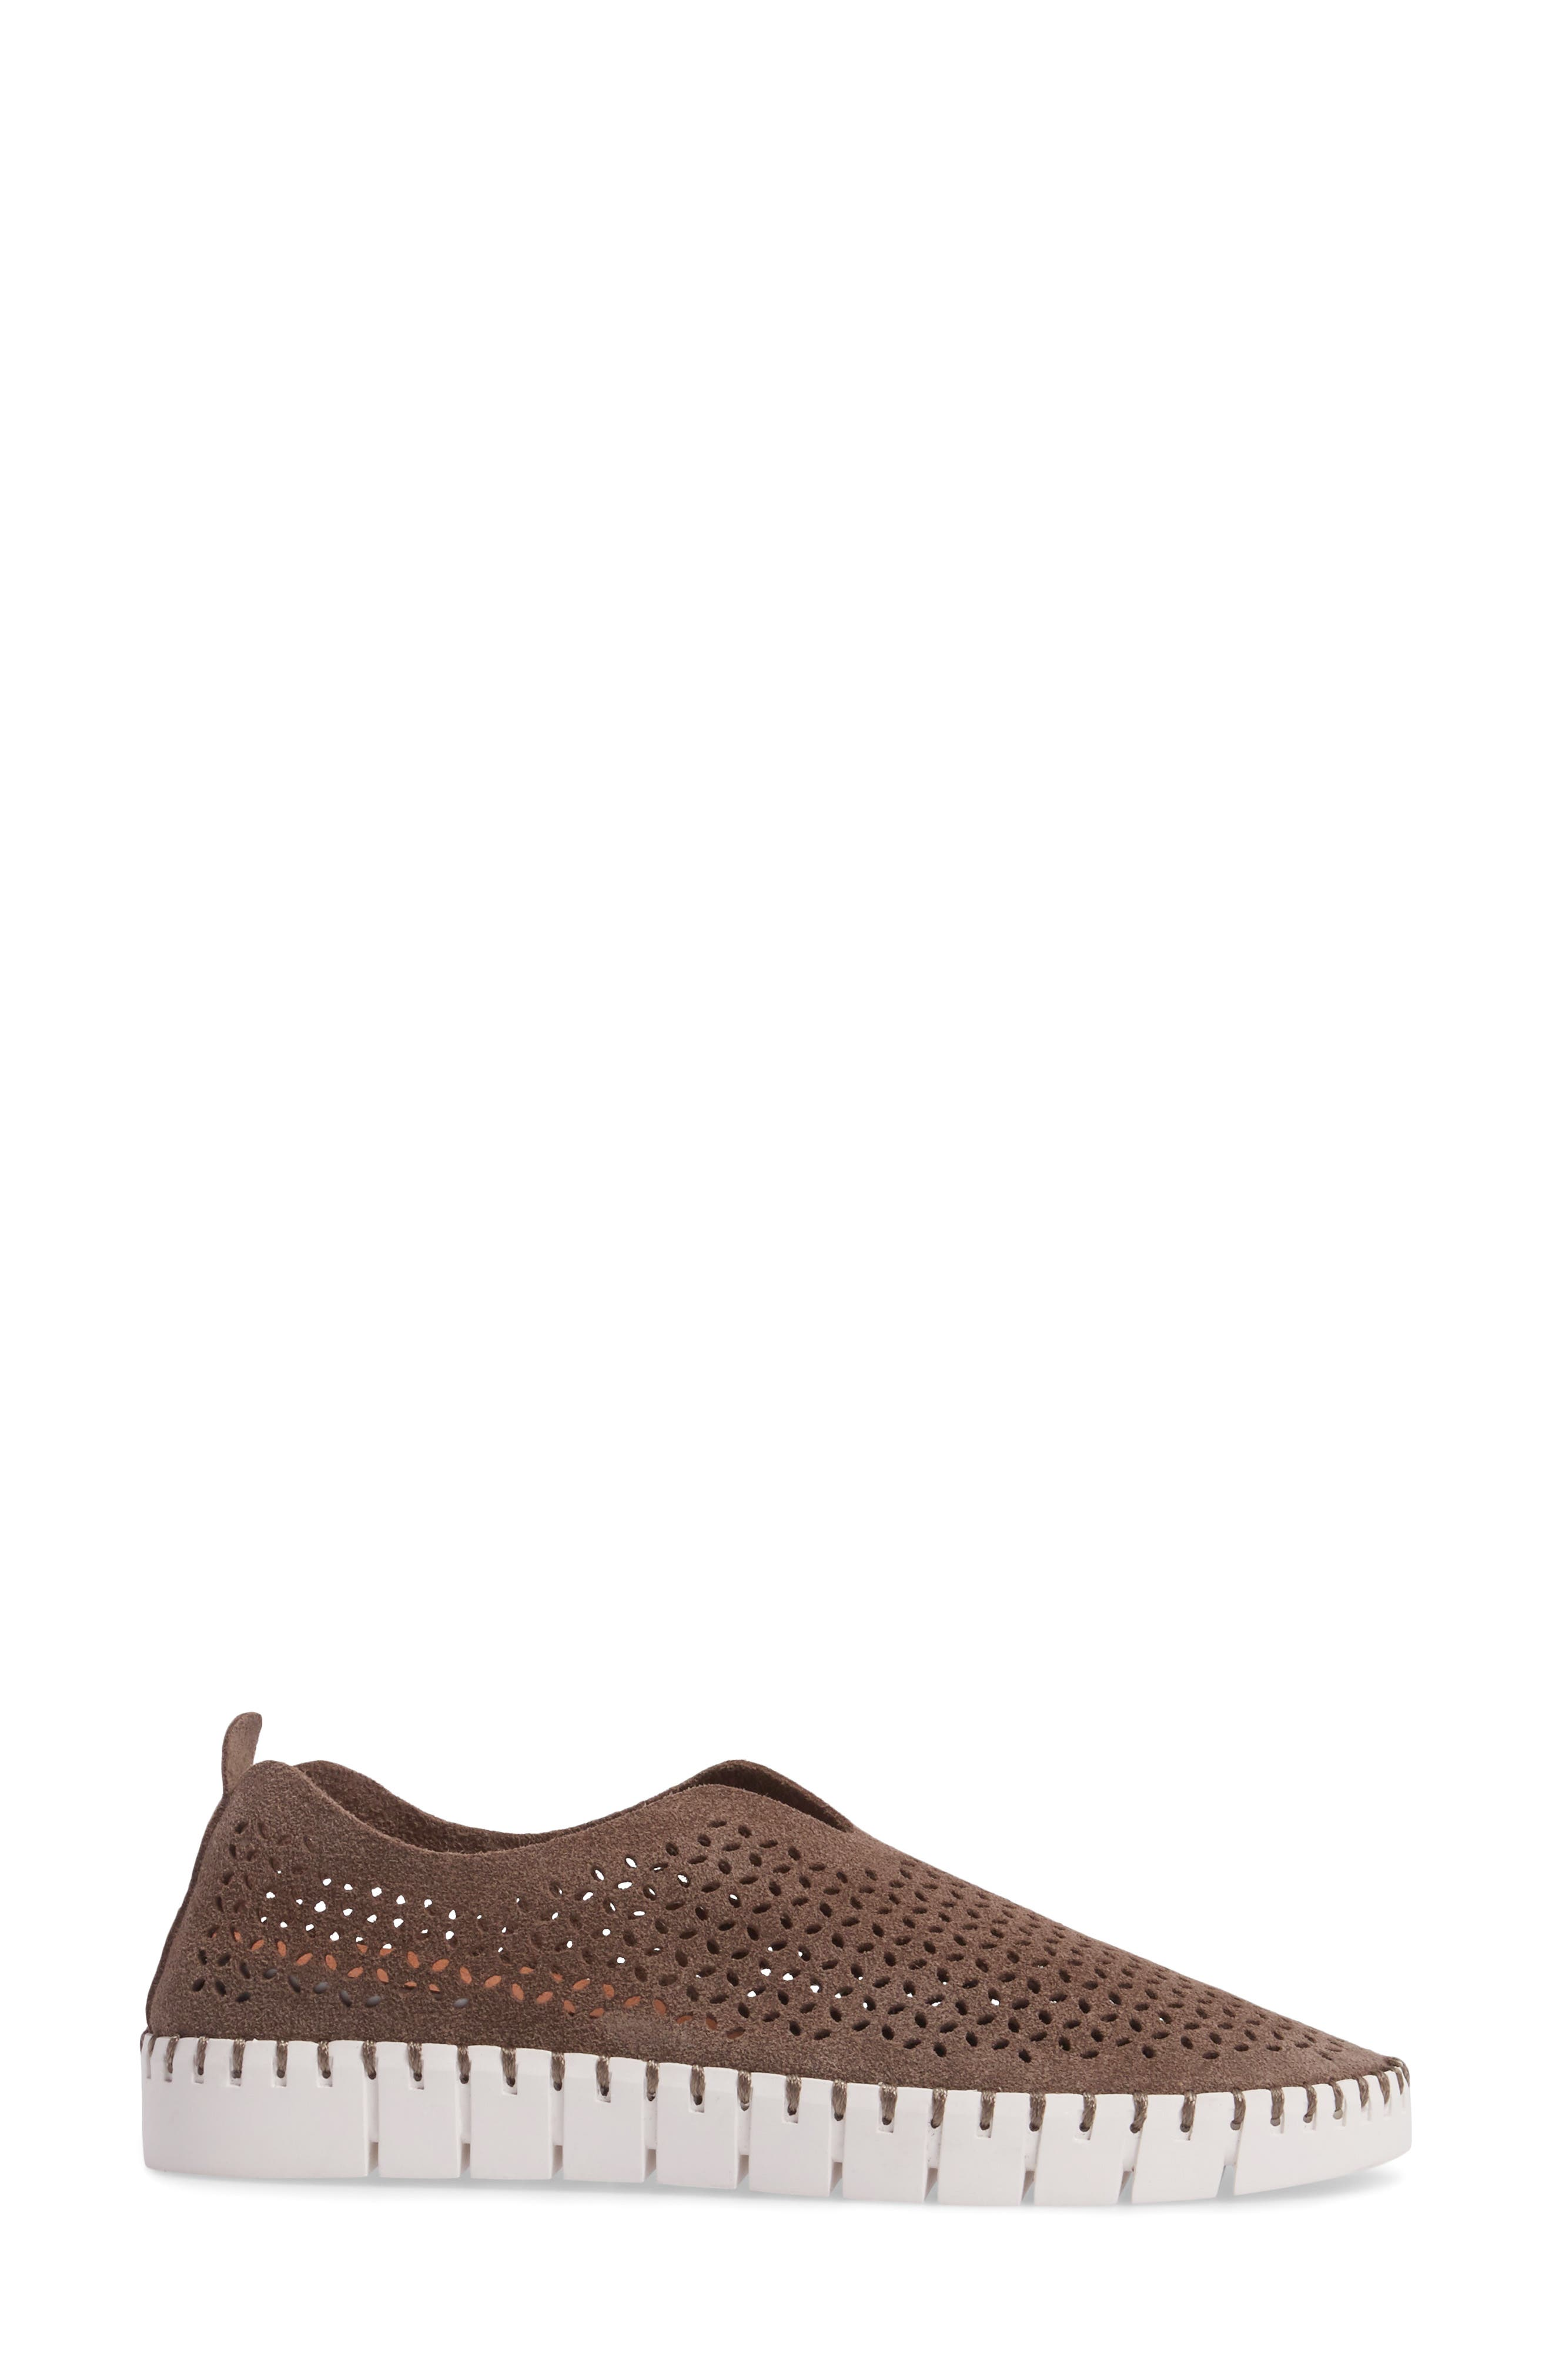 Alternate Image 3  - Jeffrey Campbell Tiles Perforated Slip-On Sneaker (Women)